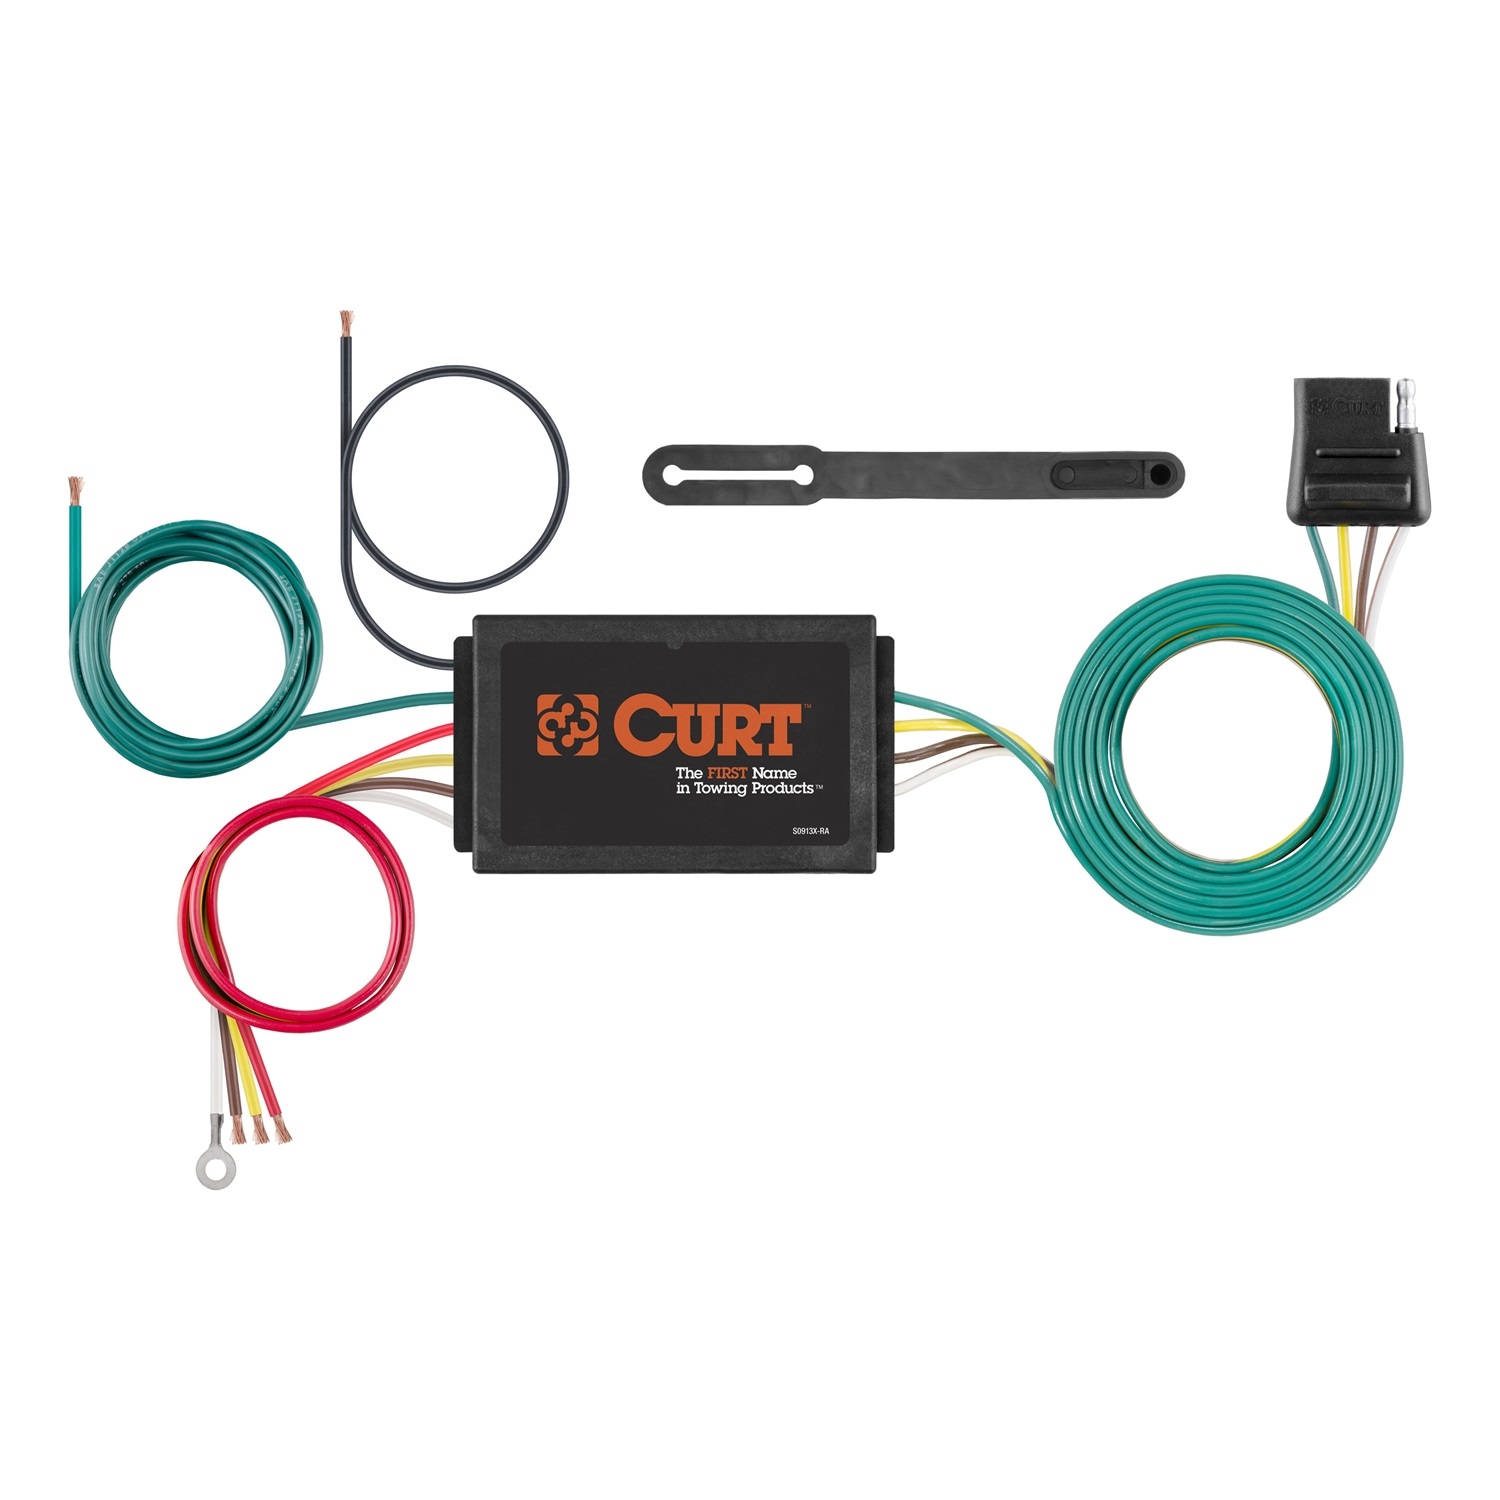 curt trailer hitch amp vehicle wiring harness fits 02 08 jaguar curt trailer hitch amp vehicle wiring harness fits